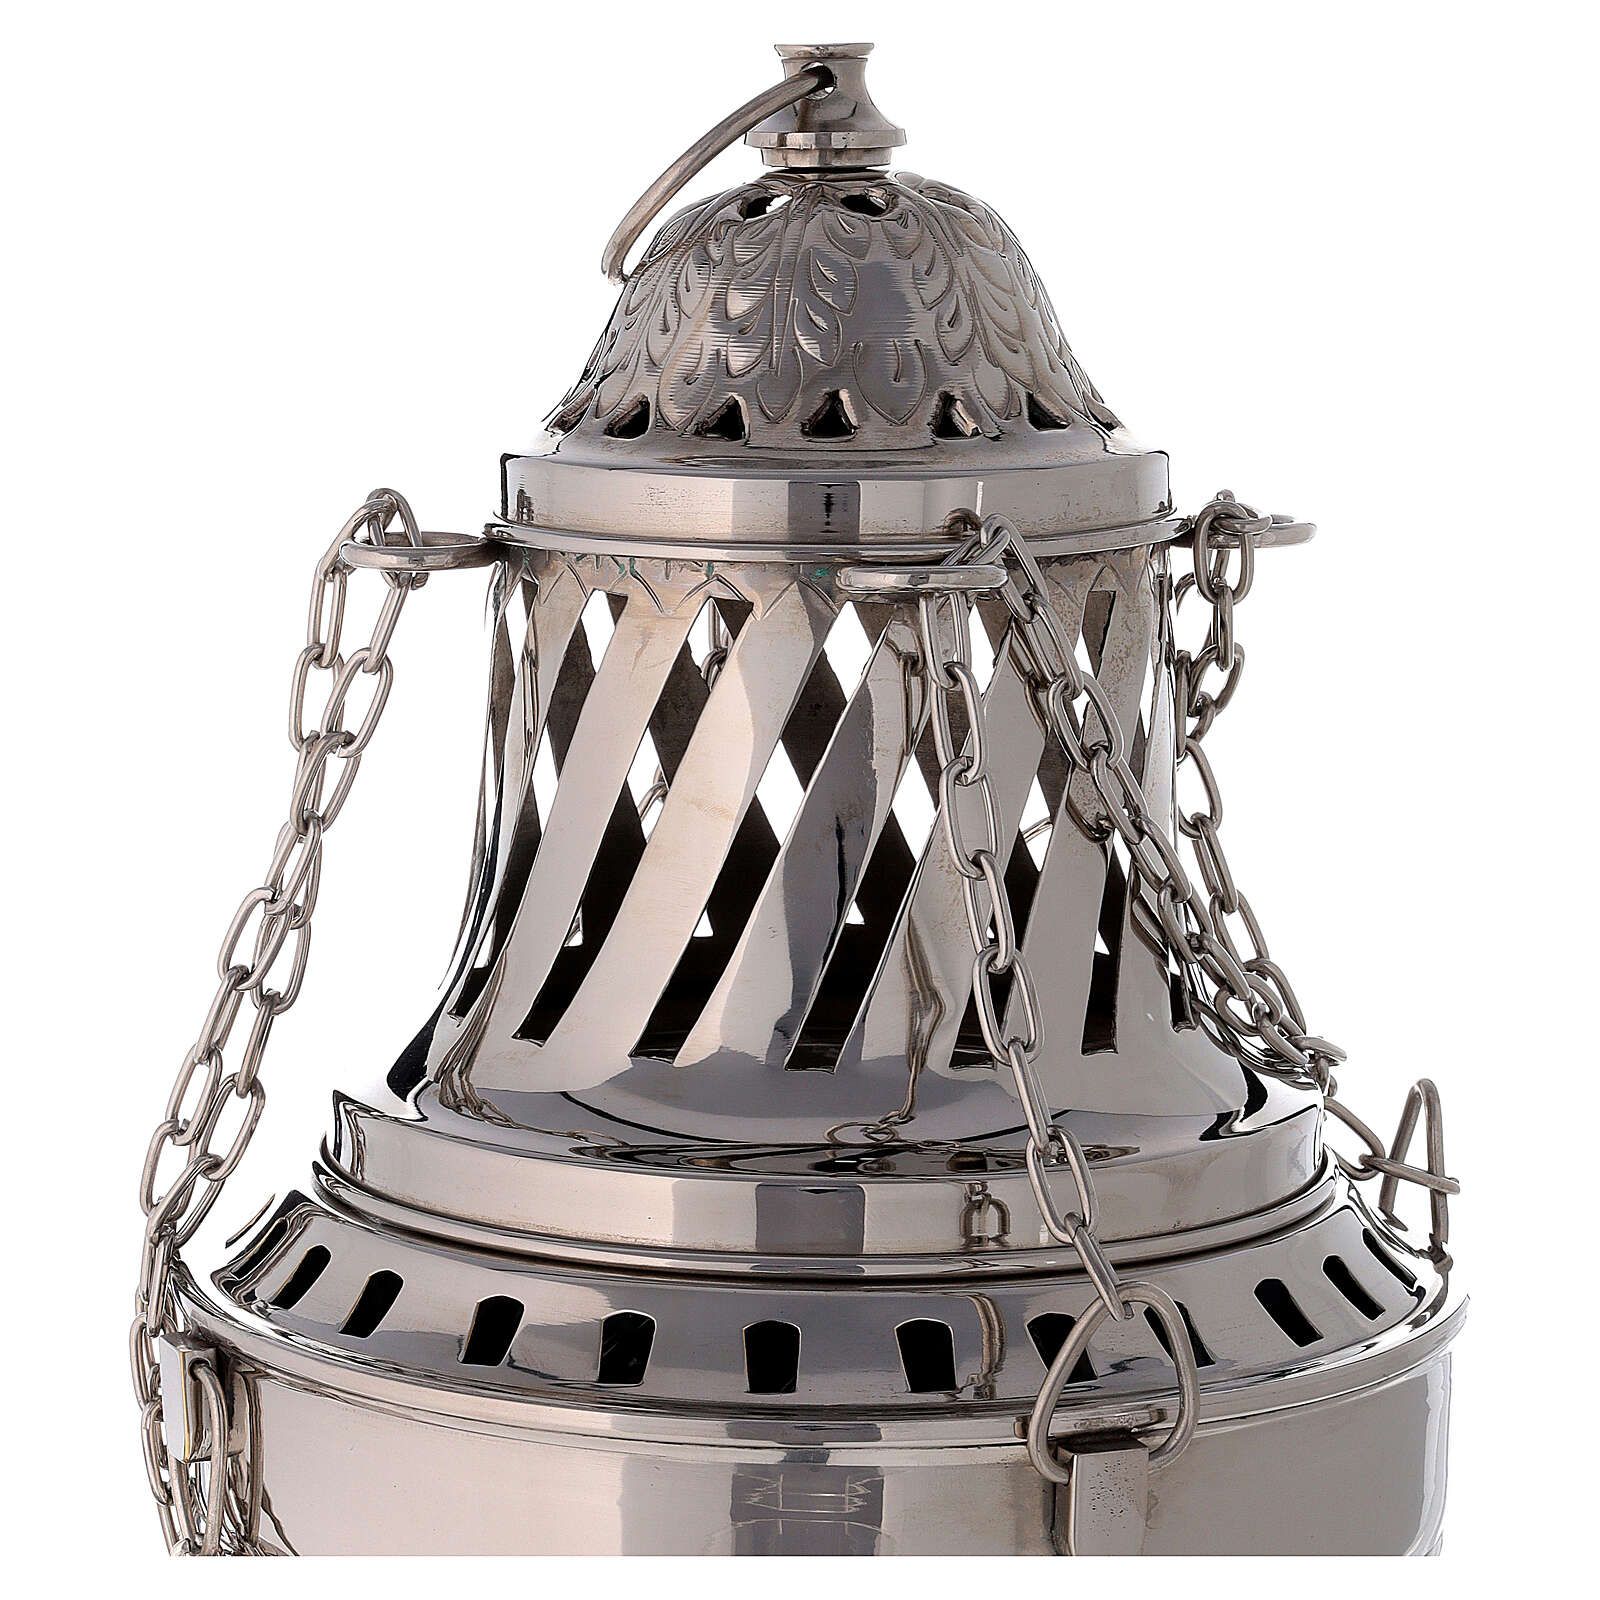 Santiago style thurible in nickel-plated brass h 13 in 3